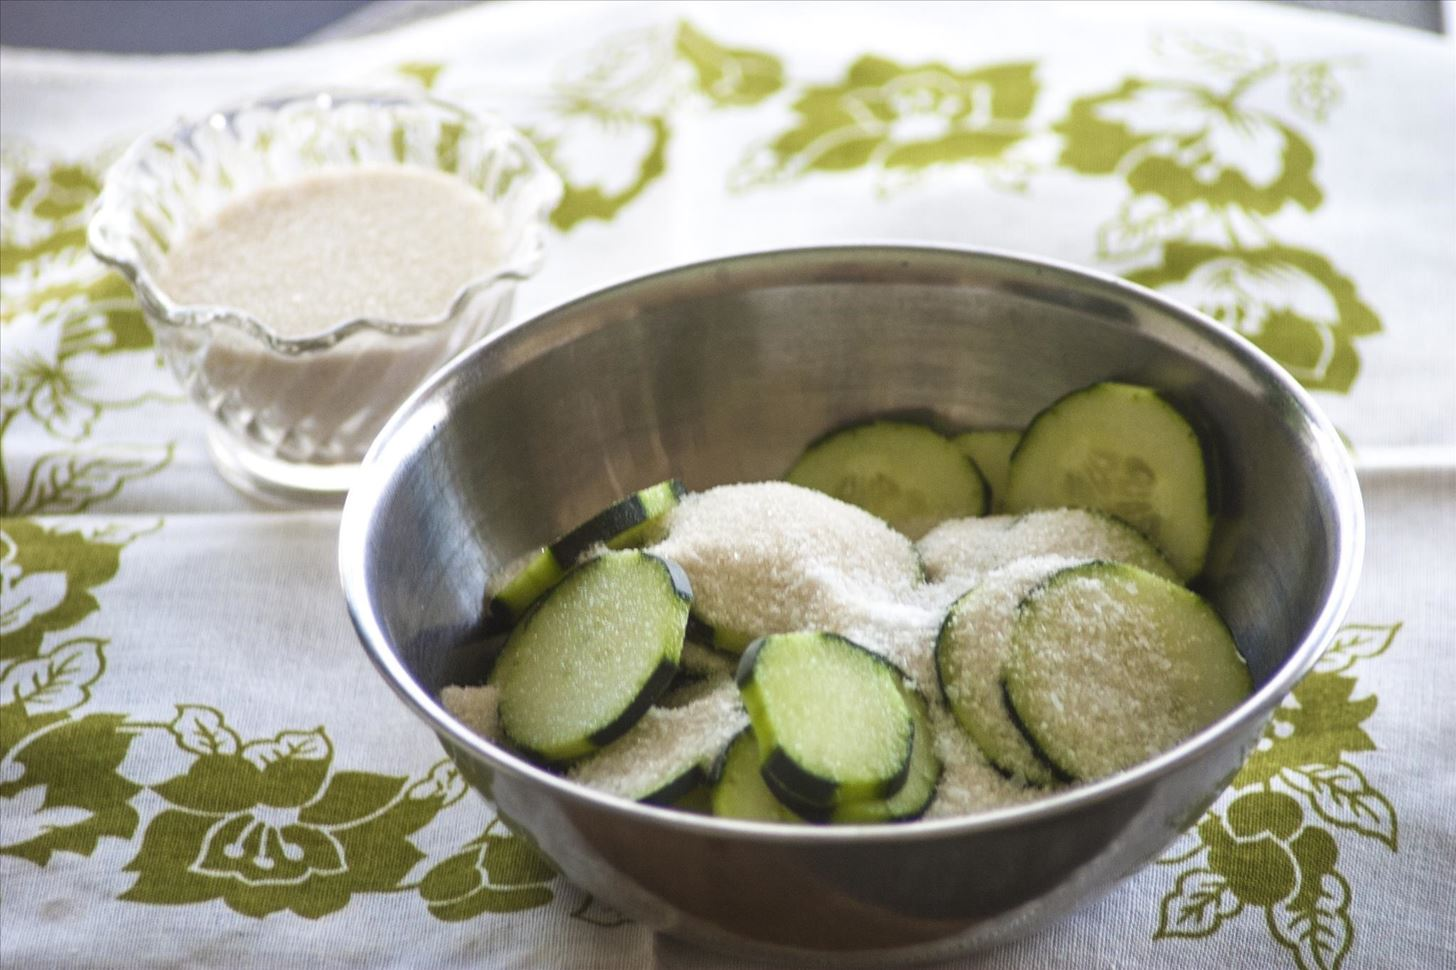 Quickles: DIY Pickles That Take Only 10 Minutes to Make